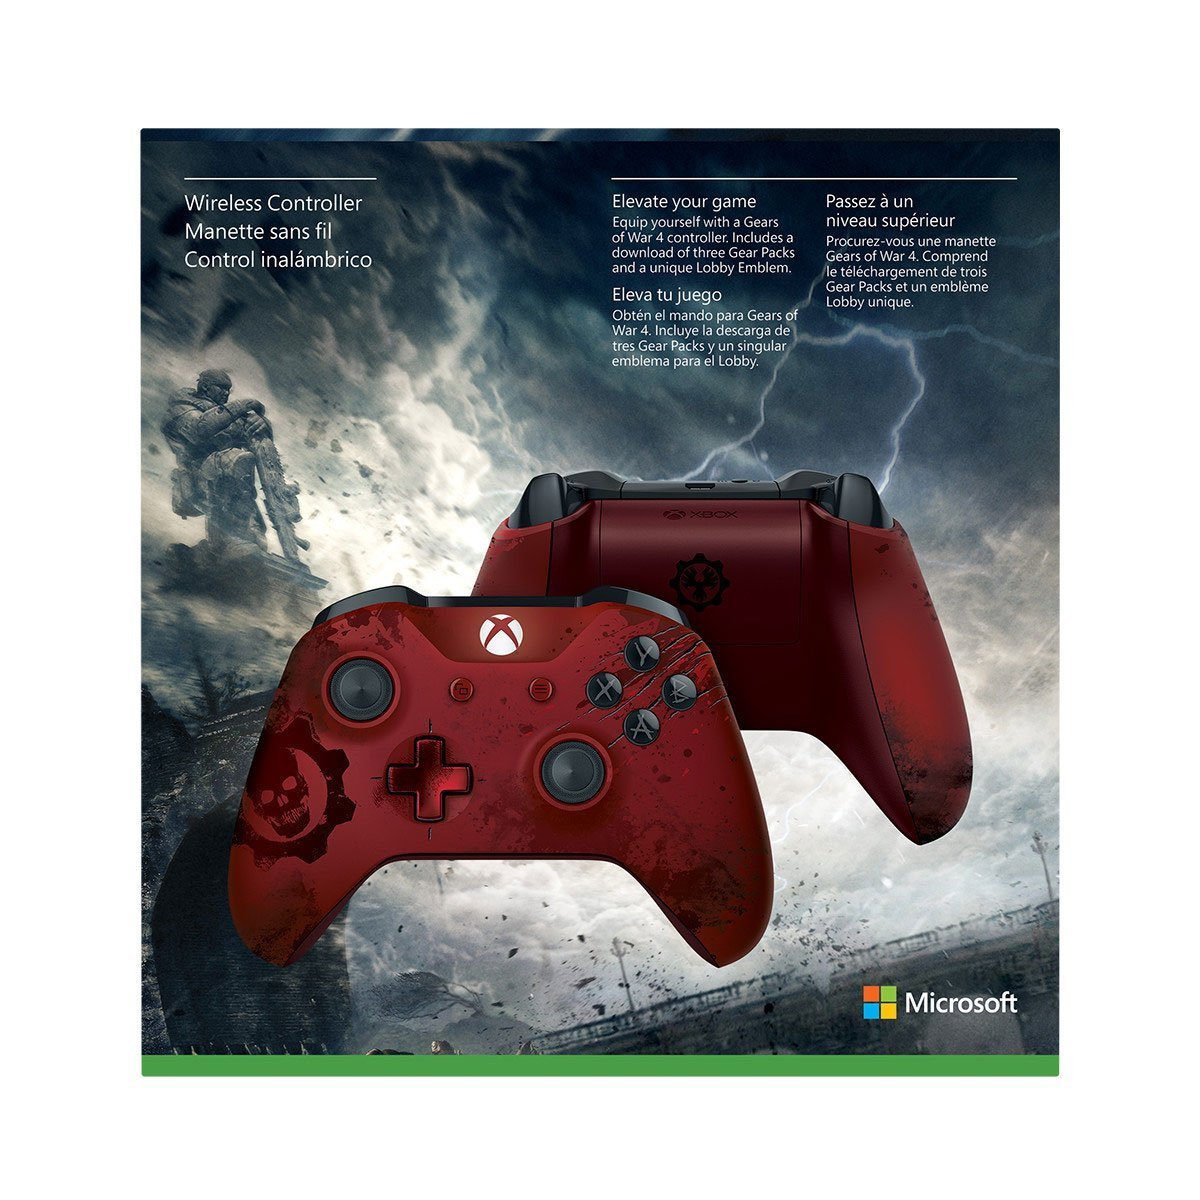 Two Limited Edition Gears Of War 4 Controllers And Xbox